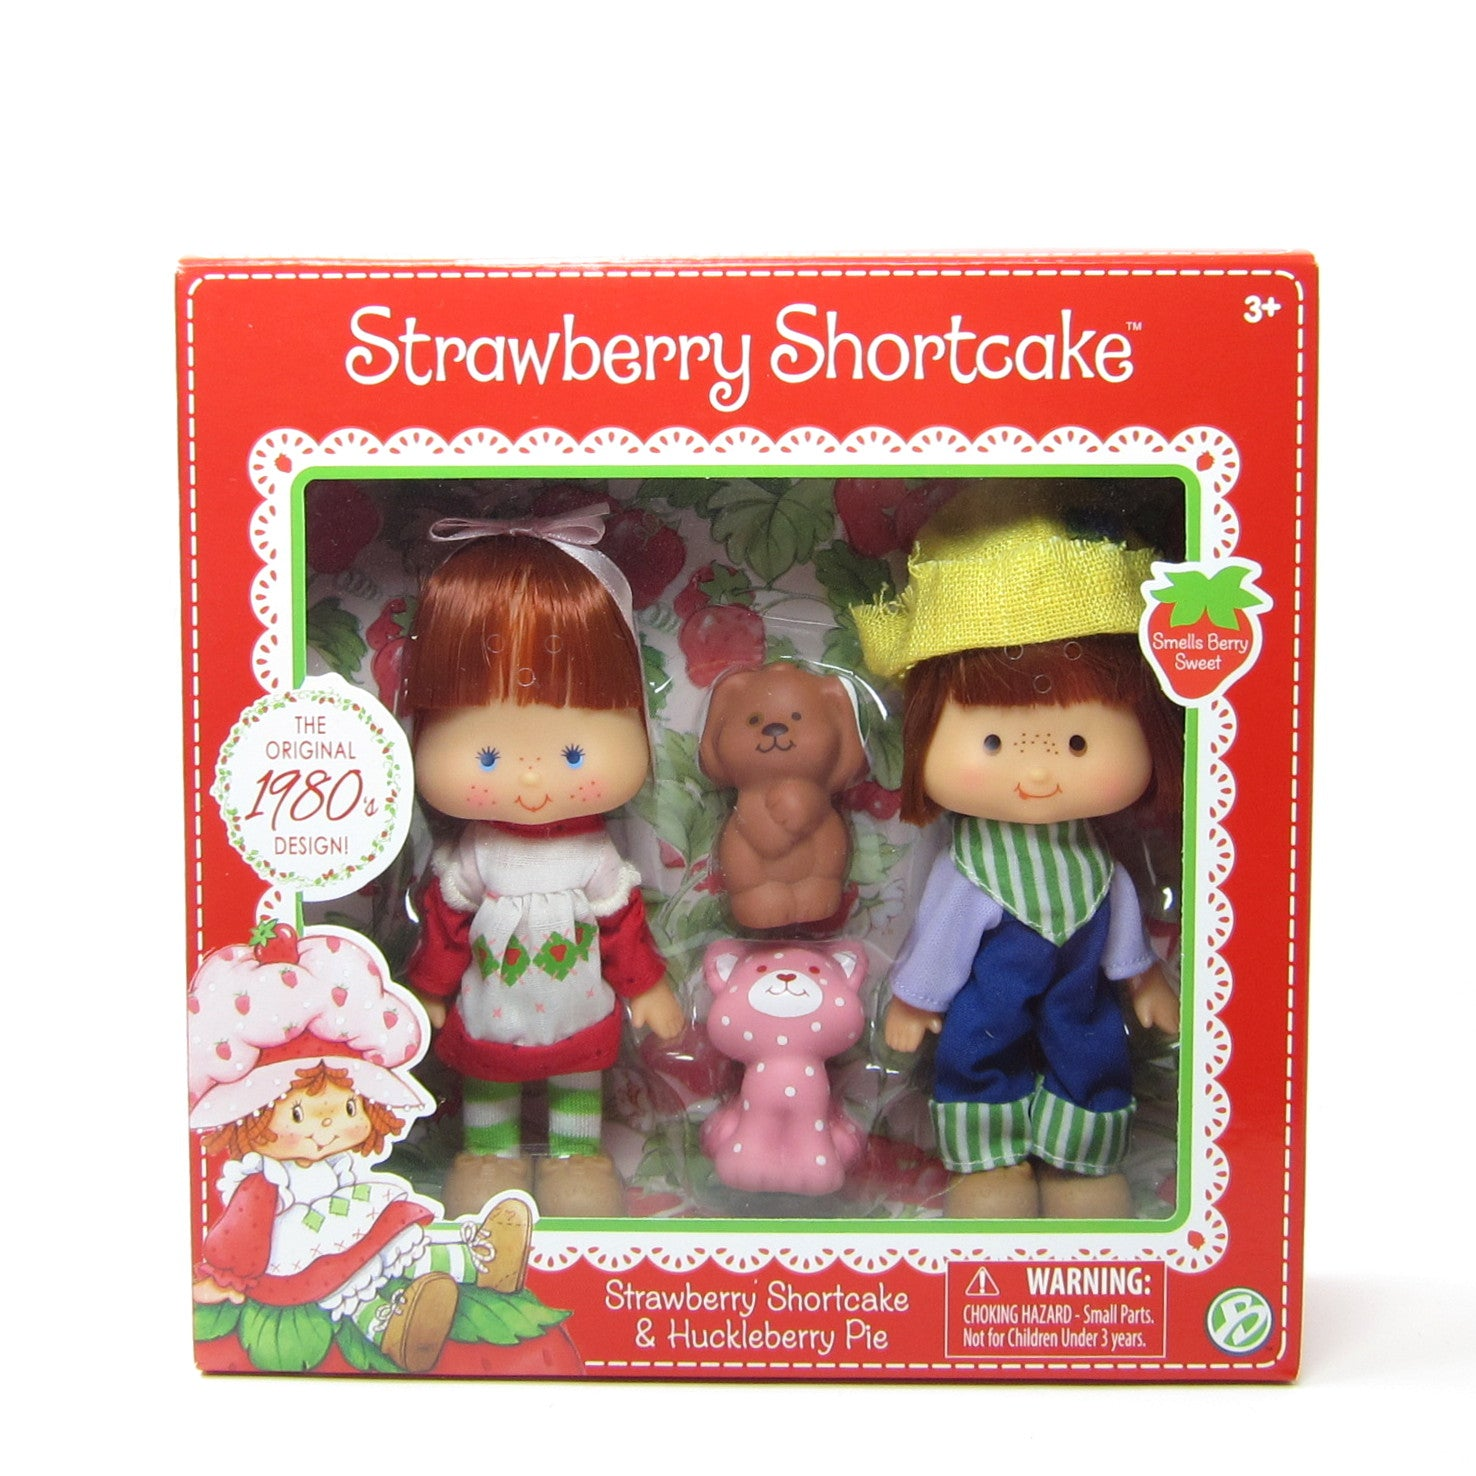 Strawberry Shortcake and Huckleberry Pie reissue boxed doll set